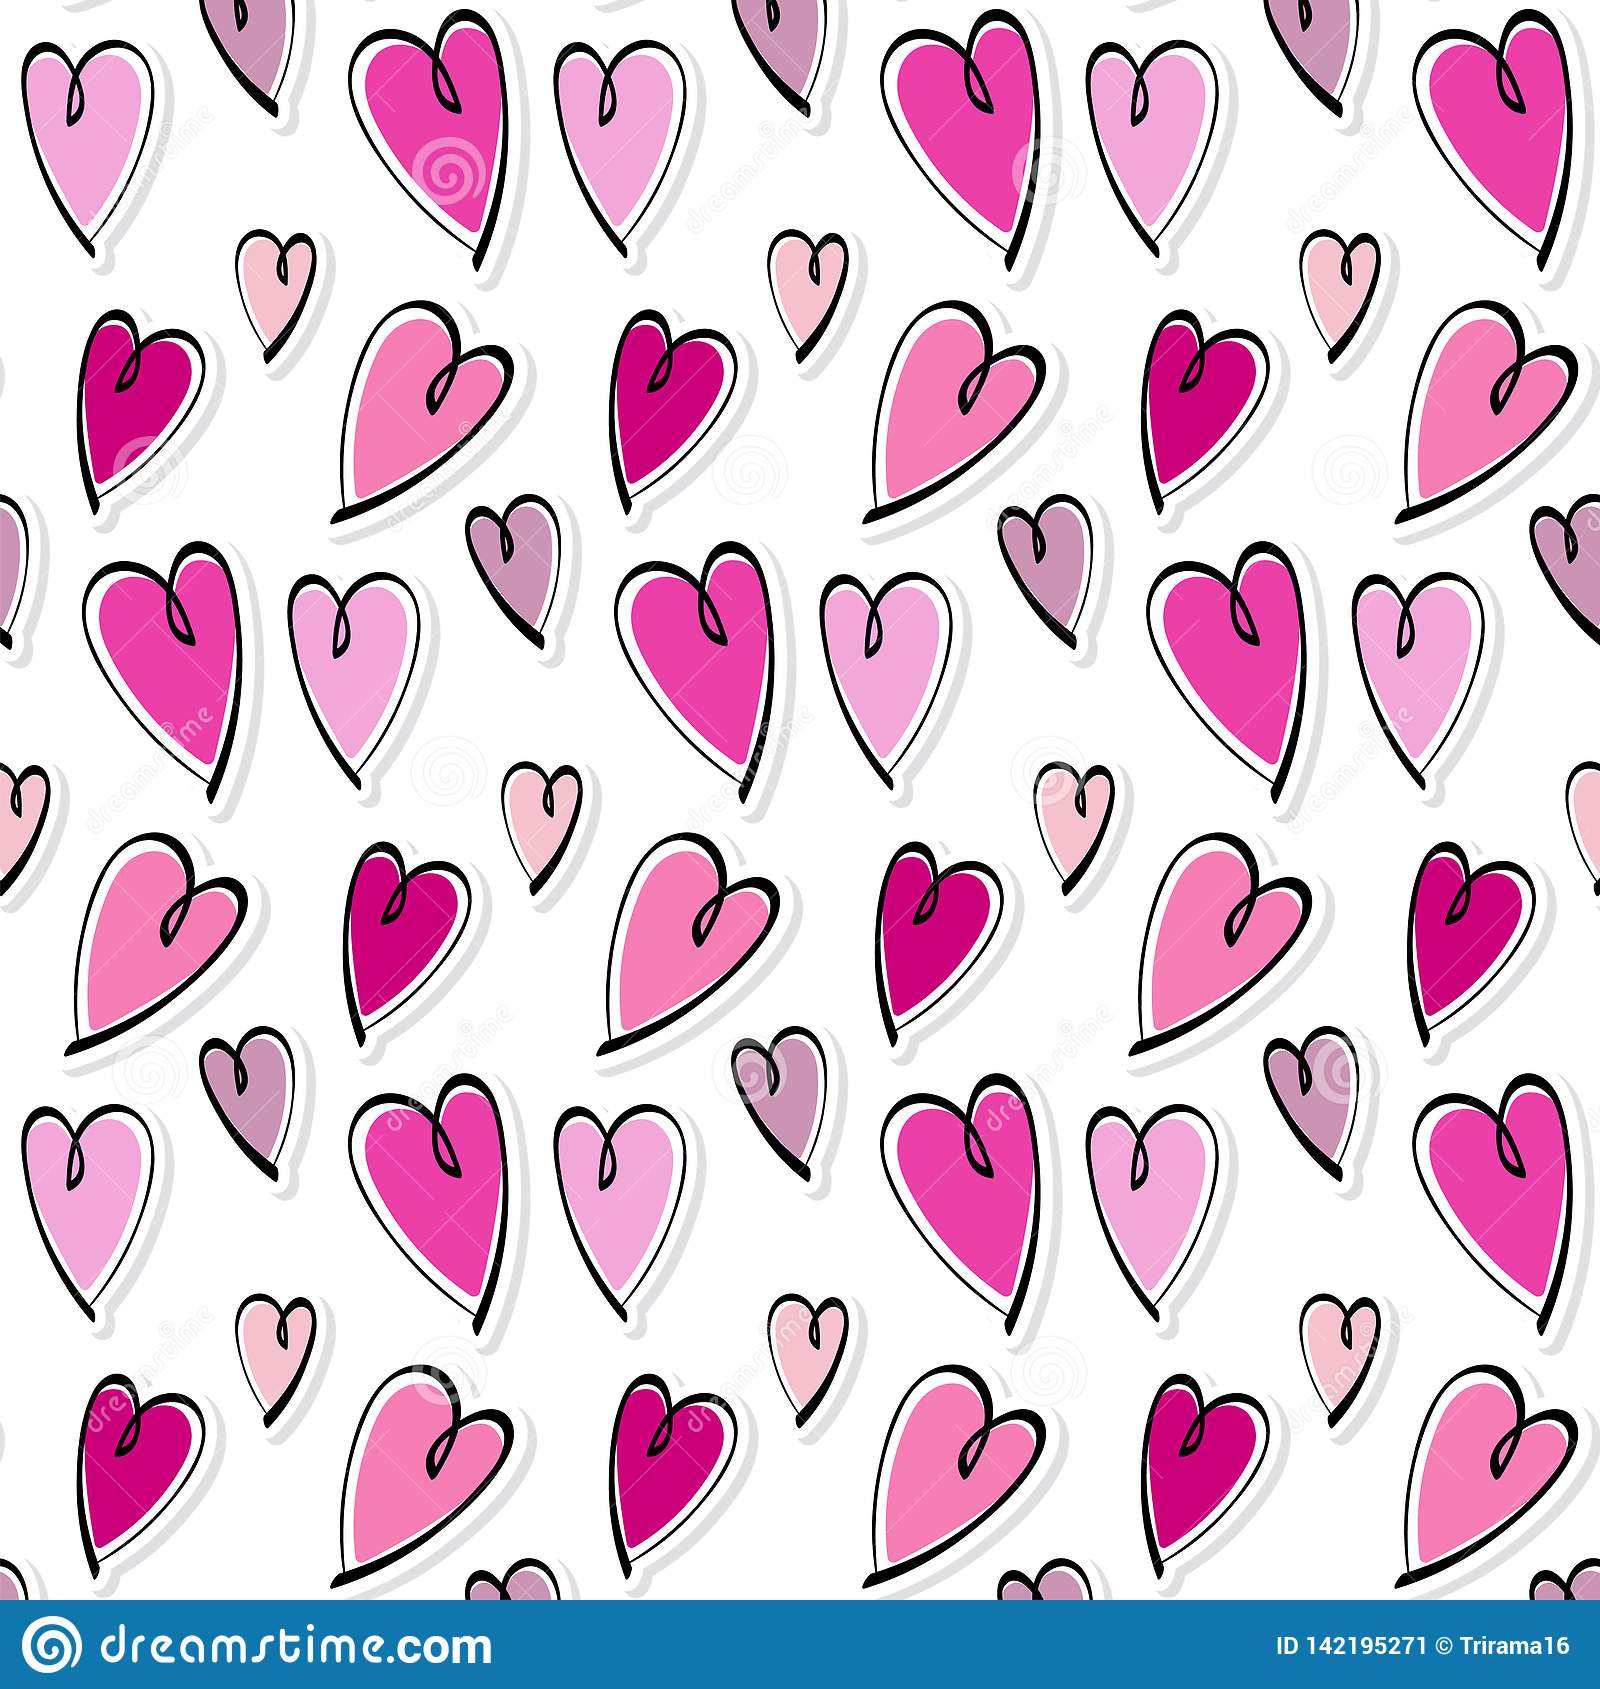 Cute romantic hearts valentine`s day pattern background